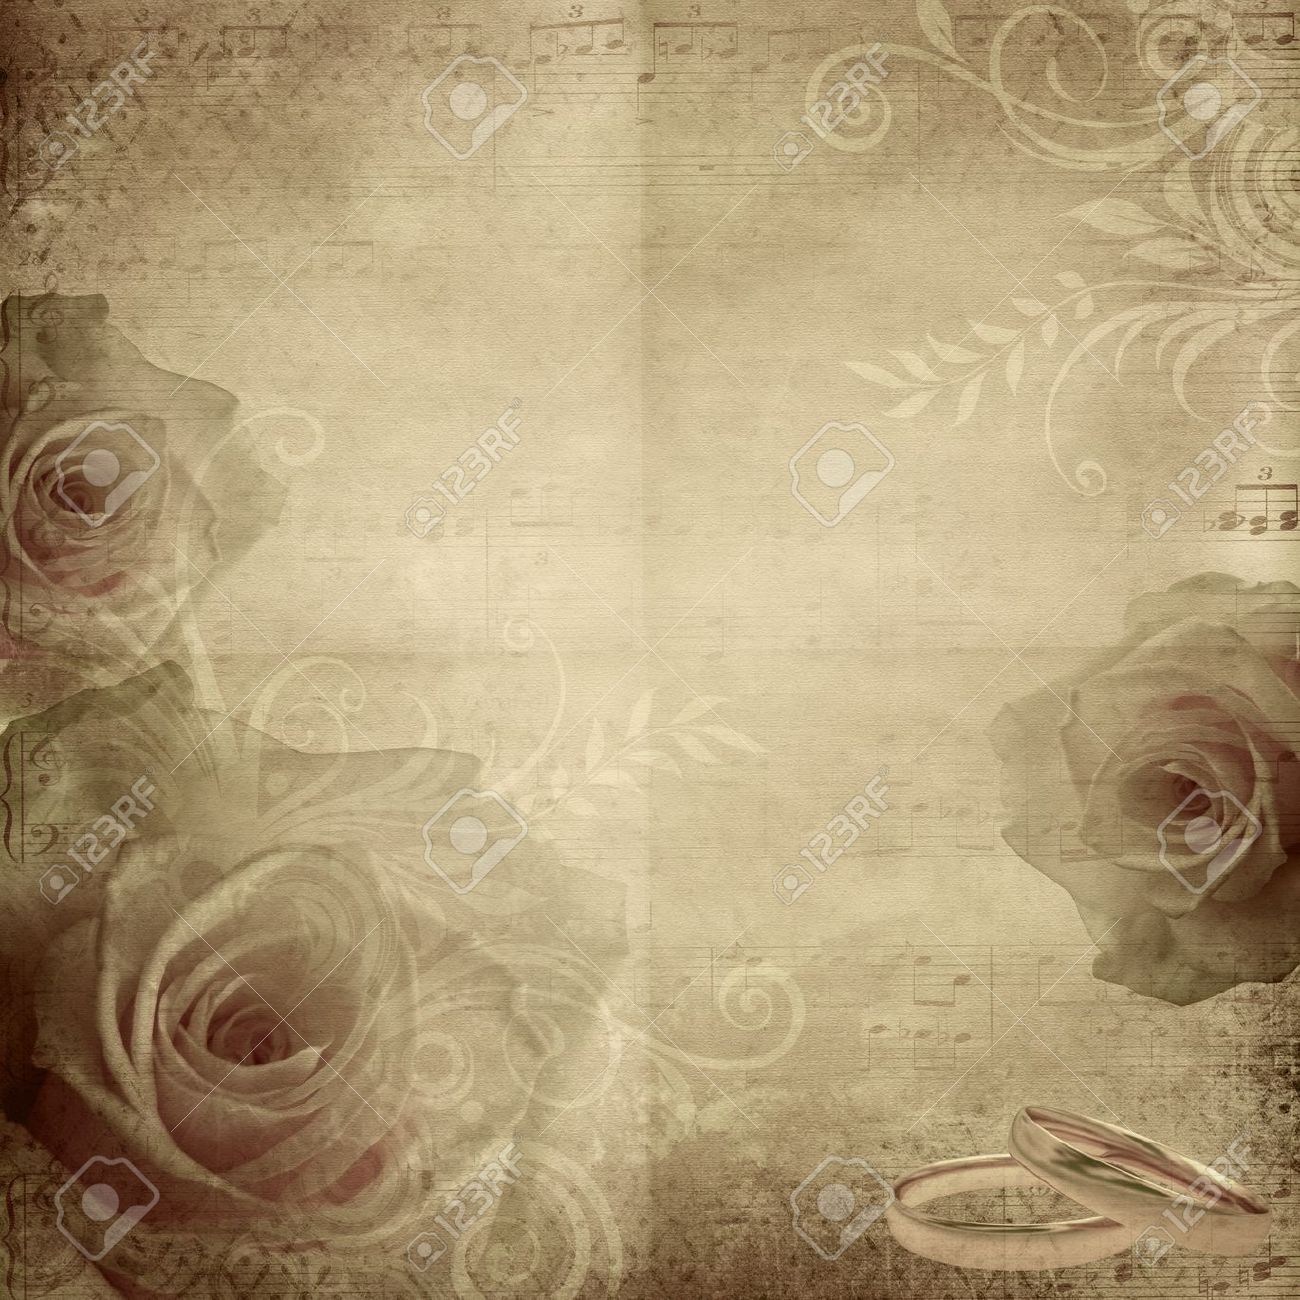 vintage beautiful wedding background stock photo picture and royalty free image image 11511893 vintage beautiful wedding background